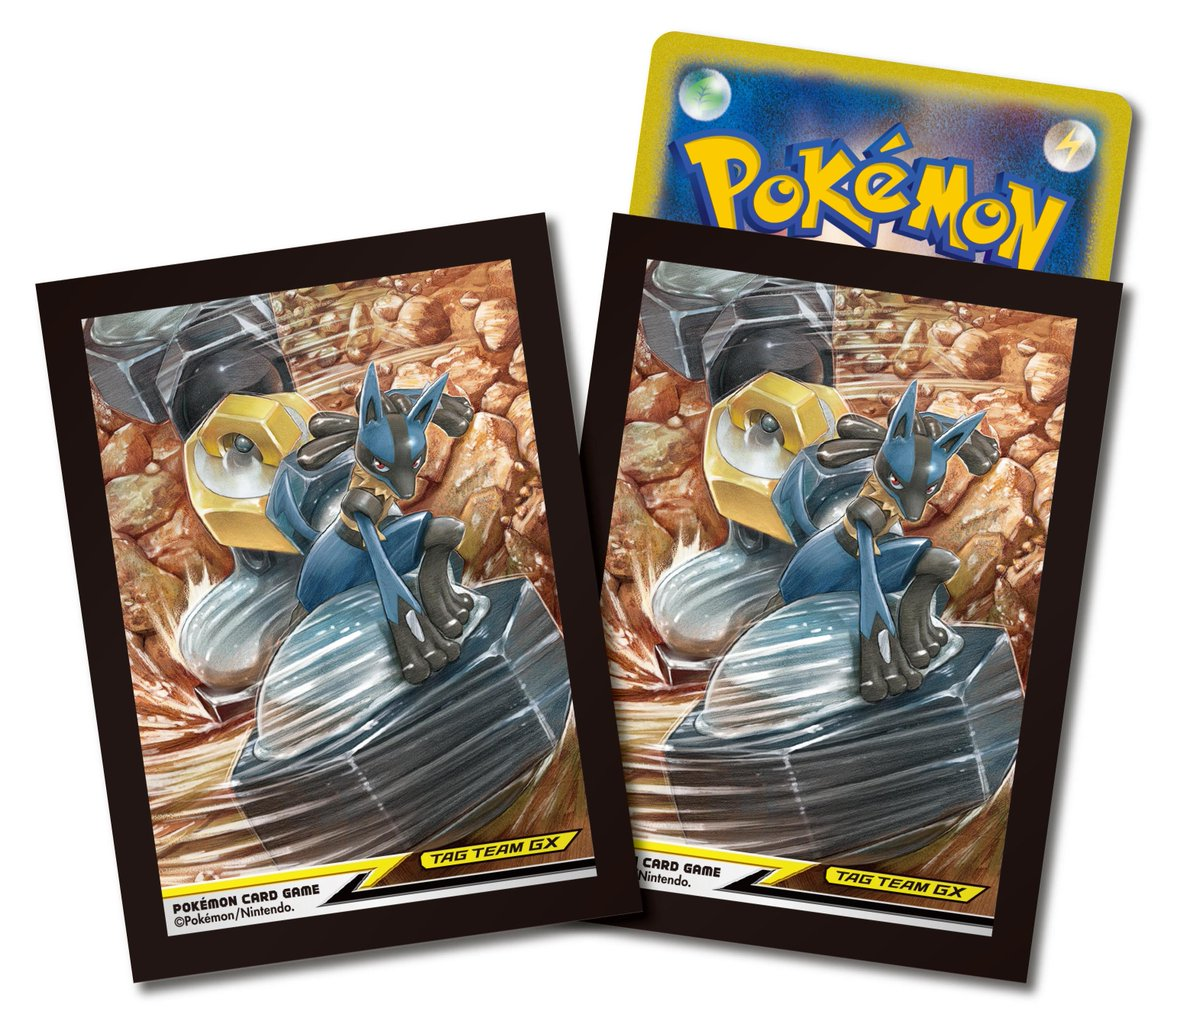 tweet-New Melmetal card sleeves and playmat! https://t.co/FChslSwpWS